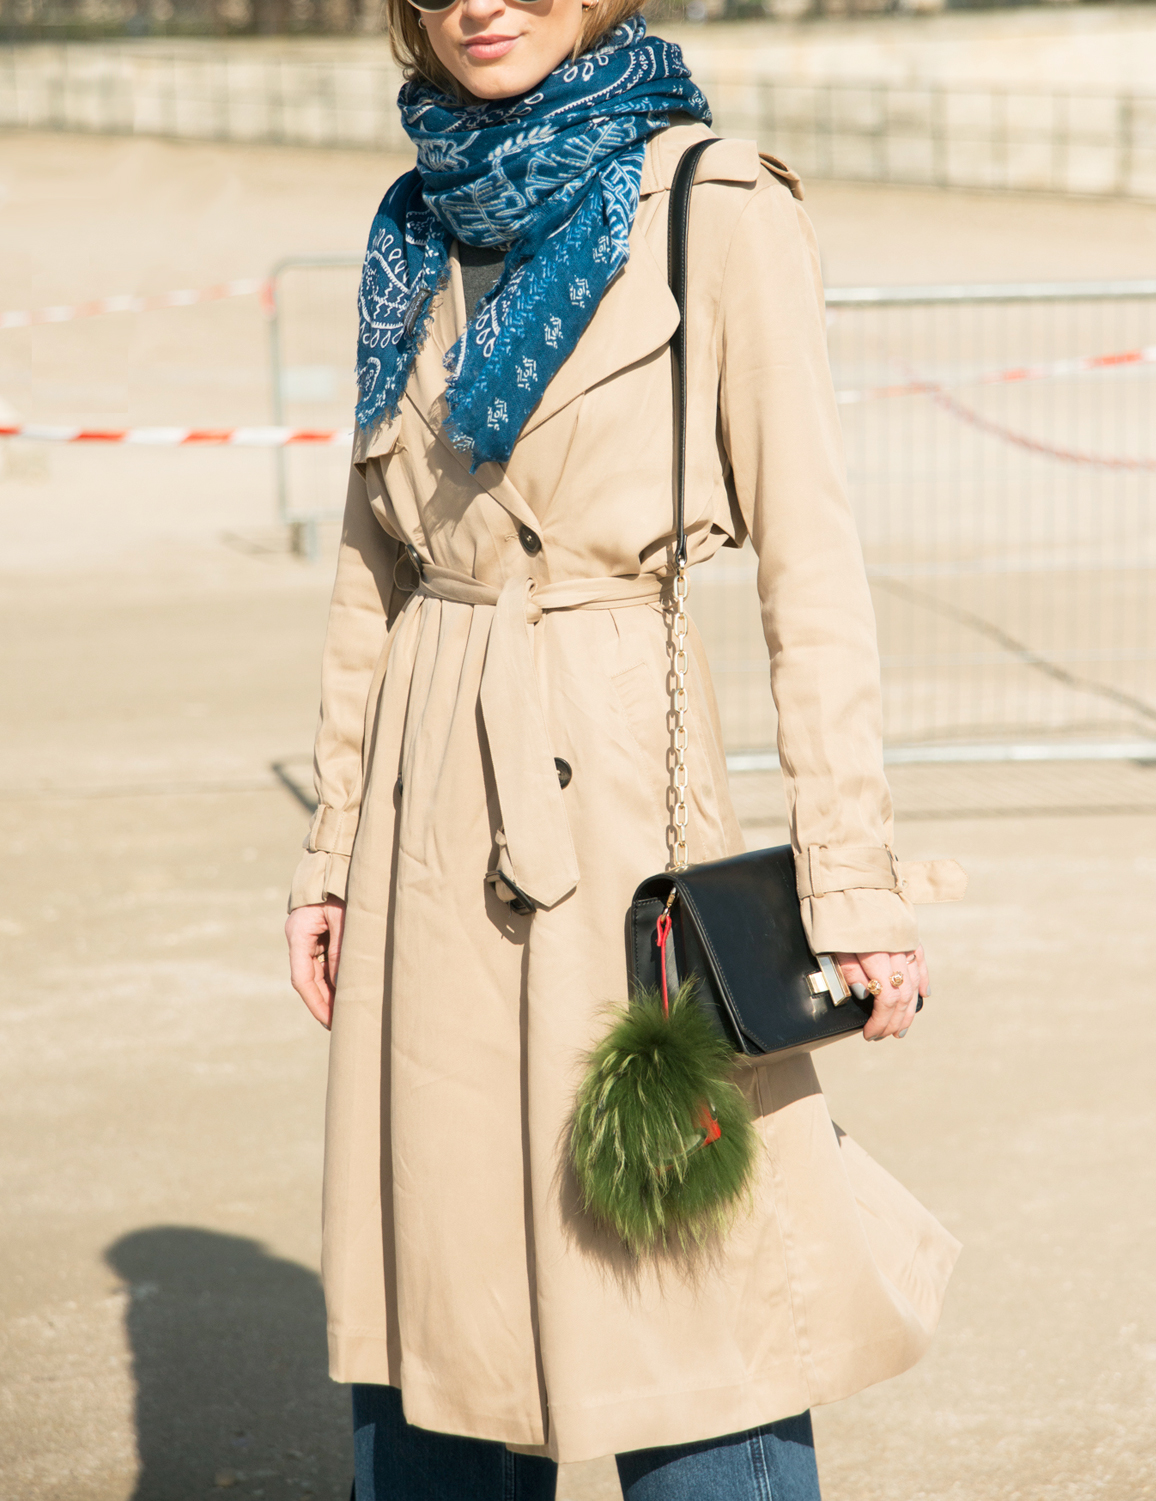 PARIS, FRANCE - MARCH 05: Fashion blogger Noor De Grout wears Ray Ban sunglasses, Justice trench coat, H&M trousers, & Other stories bag on day 3 of Paris Collections: Women on March 05, 2015 in Paris, France.  (Photo by Kirstin Sinclair/Getty Images)***